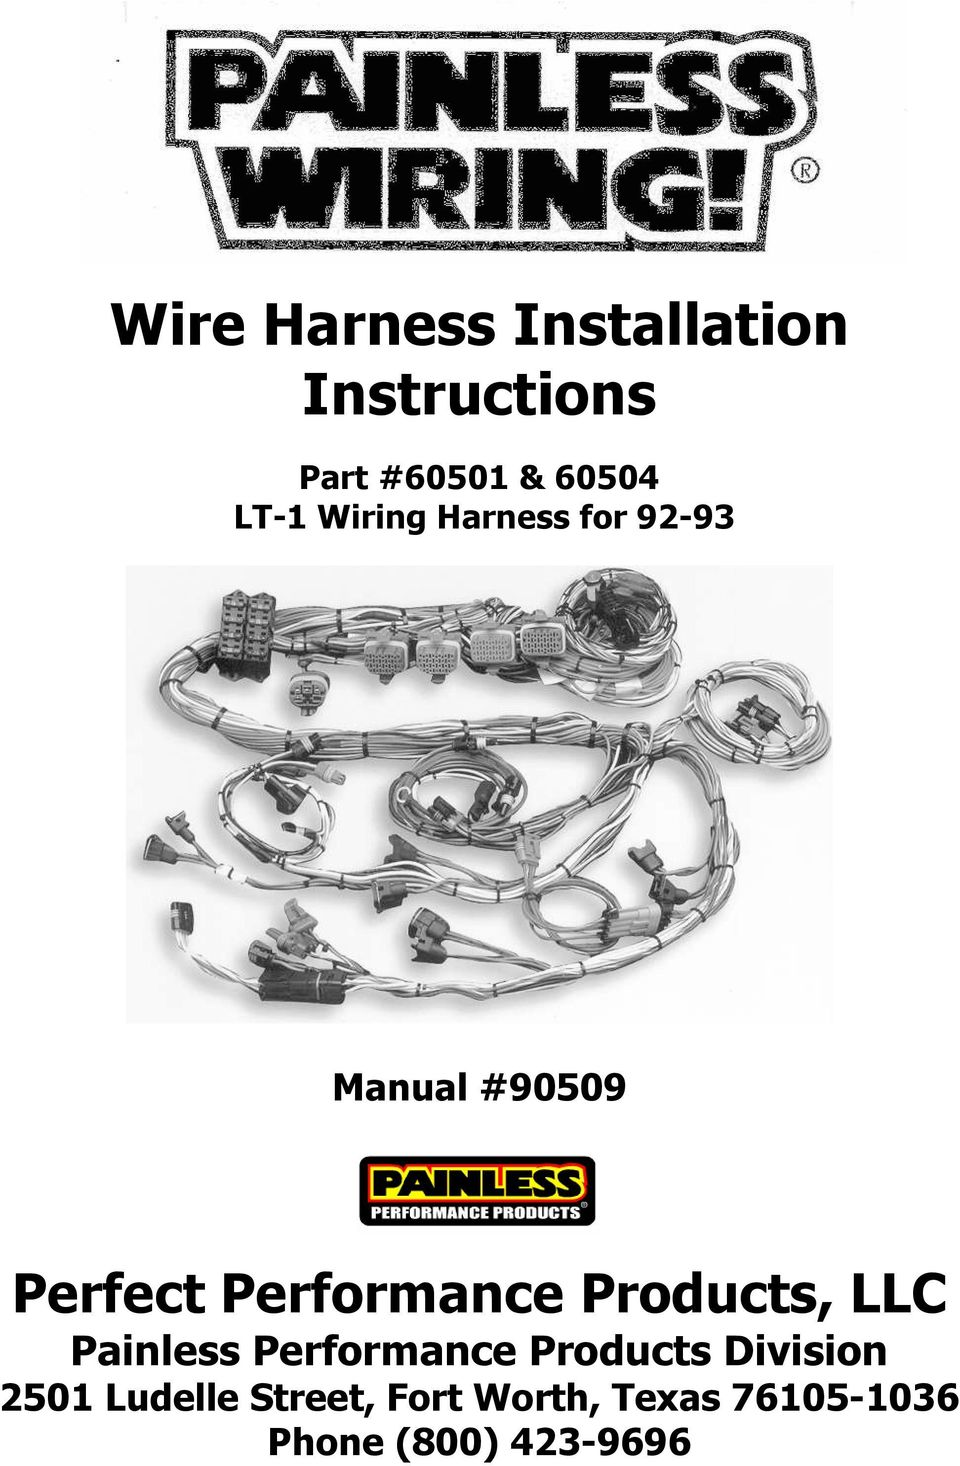 Wire Harness Installation Instructions Pdf Wiring Installed Performance Products Llc Painless